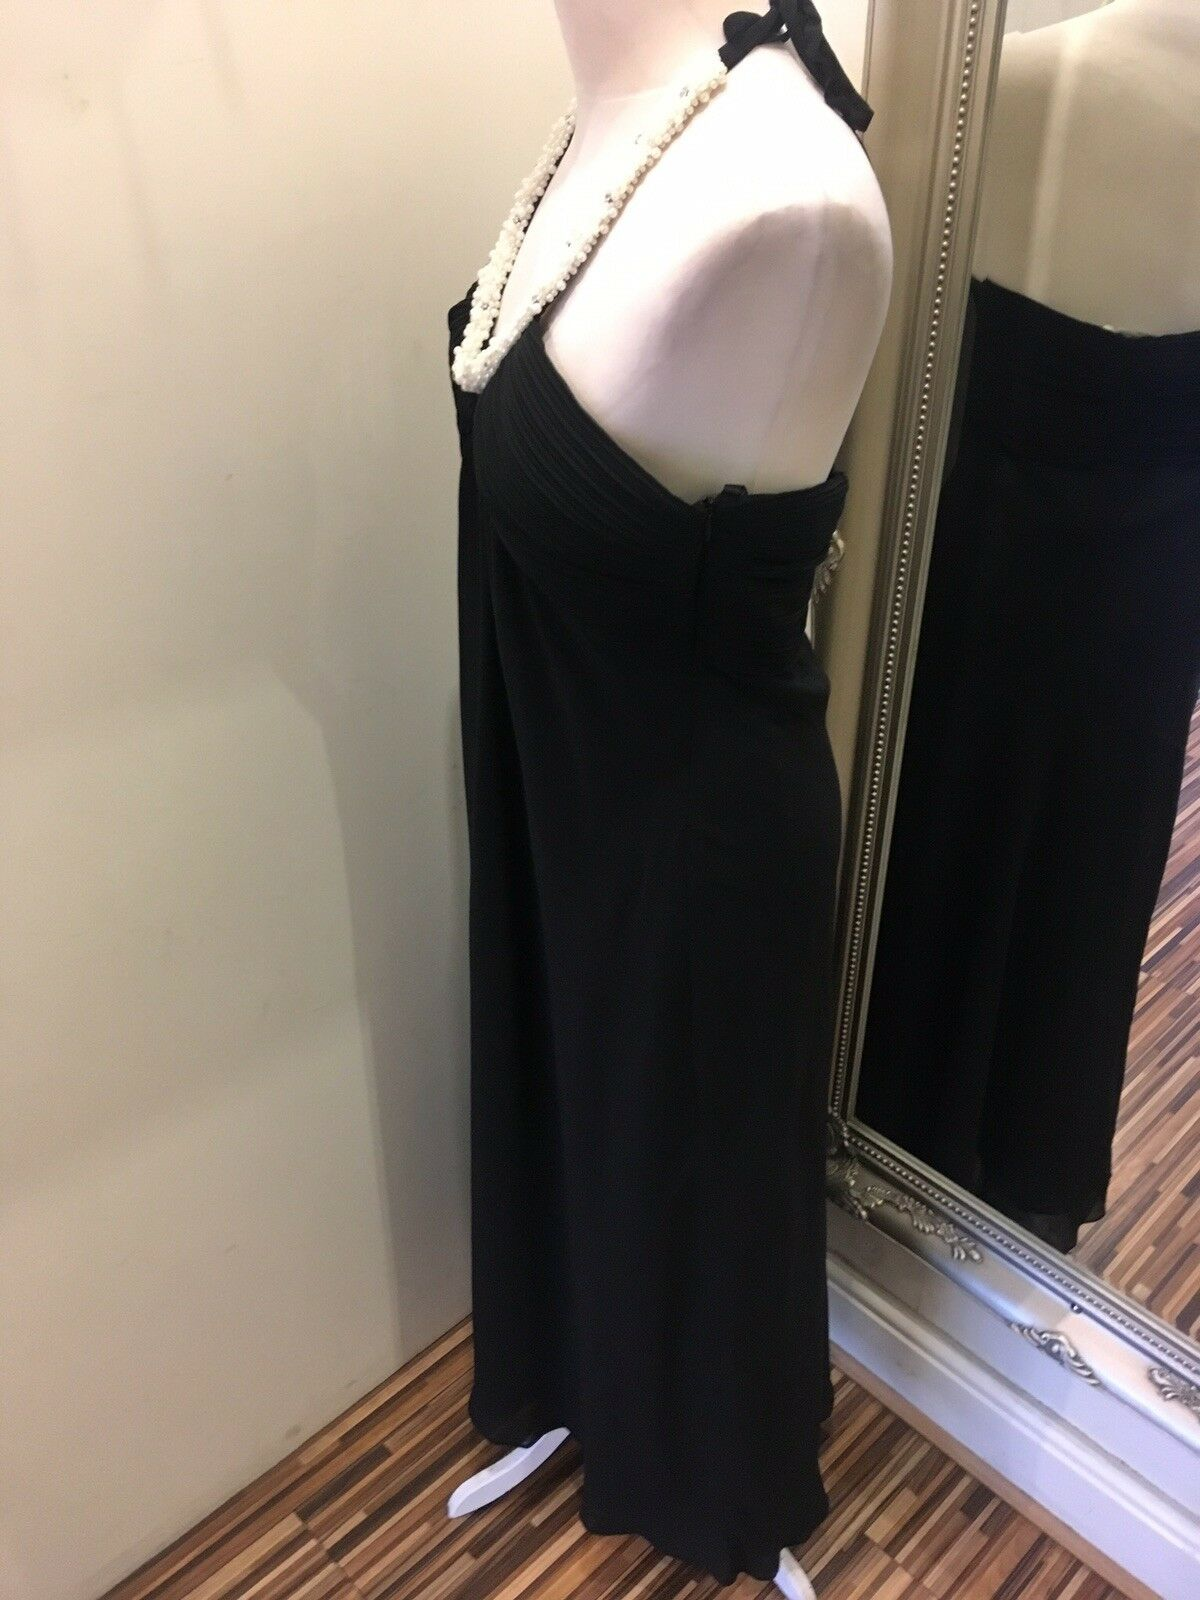 Joseph Ribkoff Evening Dress Size 14 Evening Wear Cruise Cruise Cruise 3e62f9